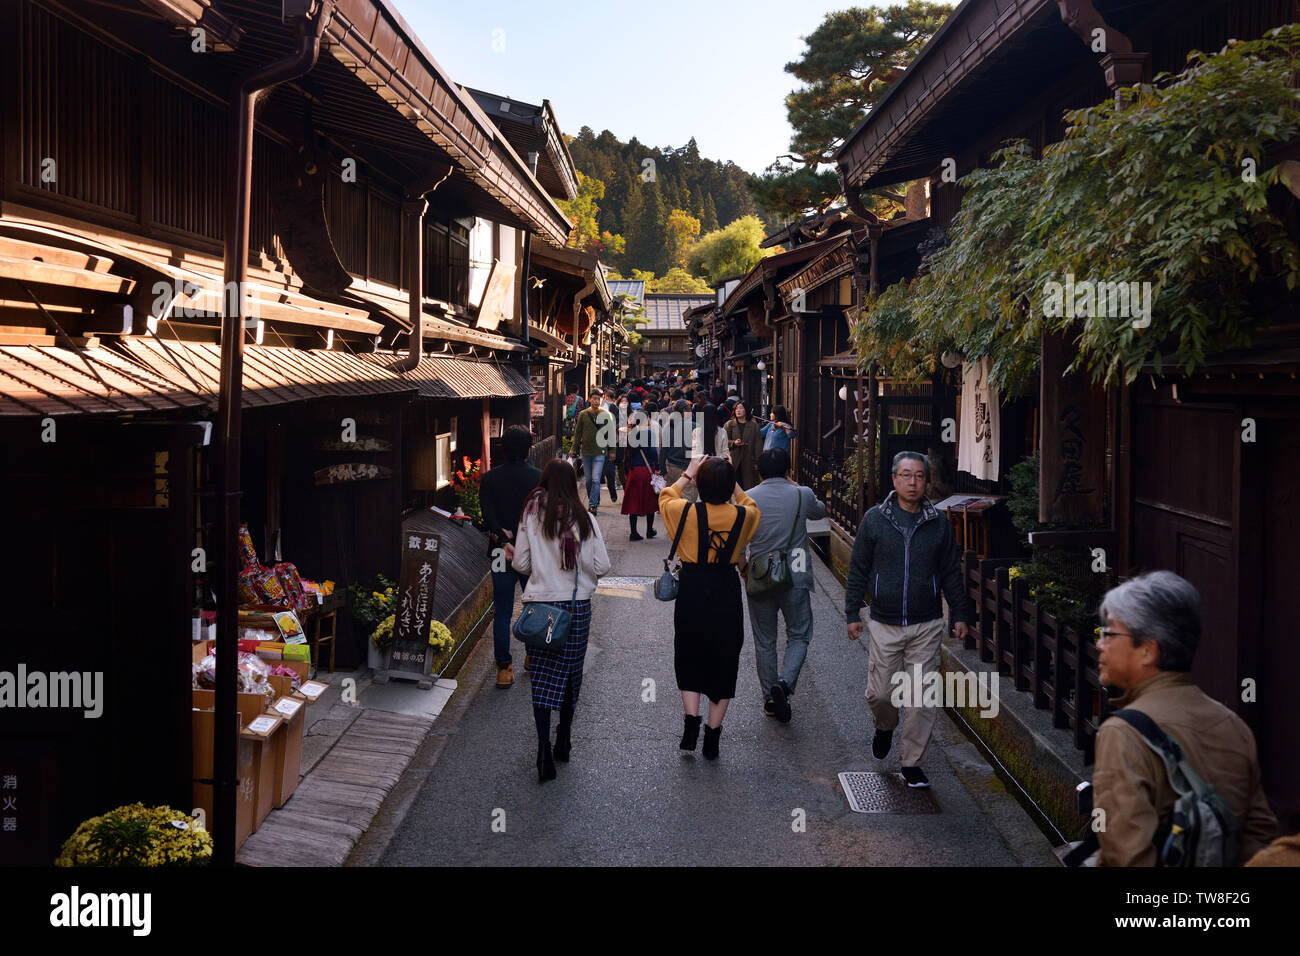 Busy with tourists Kami-Sannomachi, old town market street of Takayama. Merchant town street lined with shops and restaurants. Japan Stock Photo